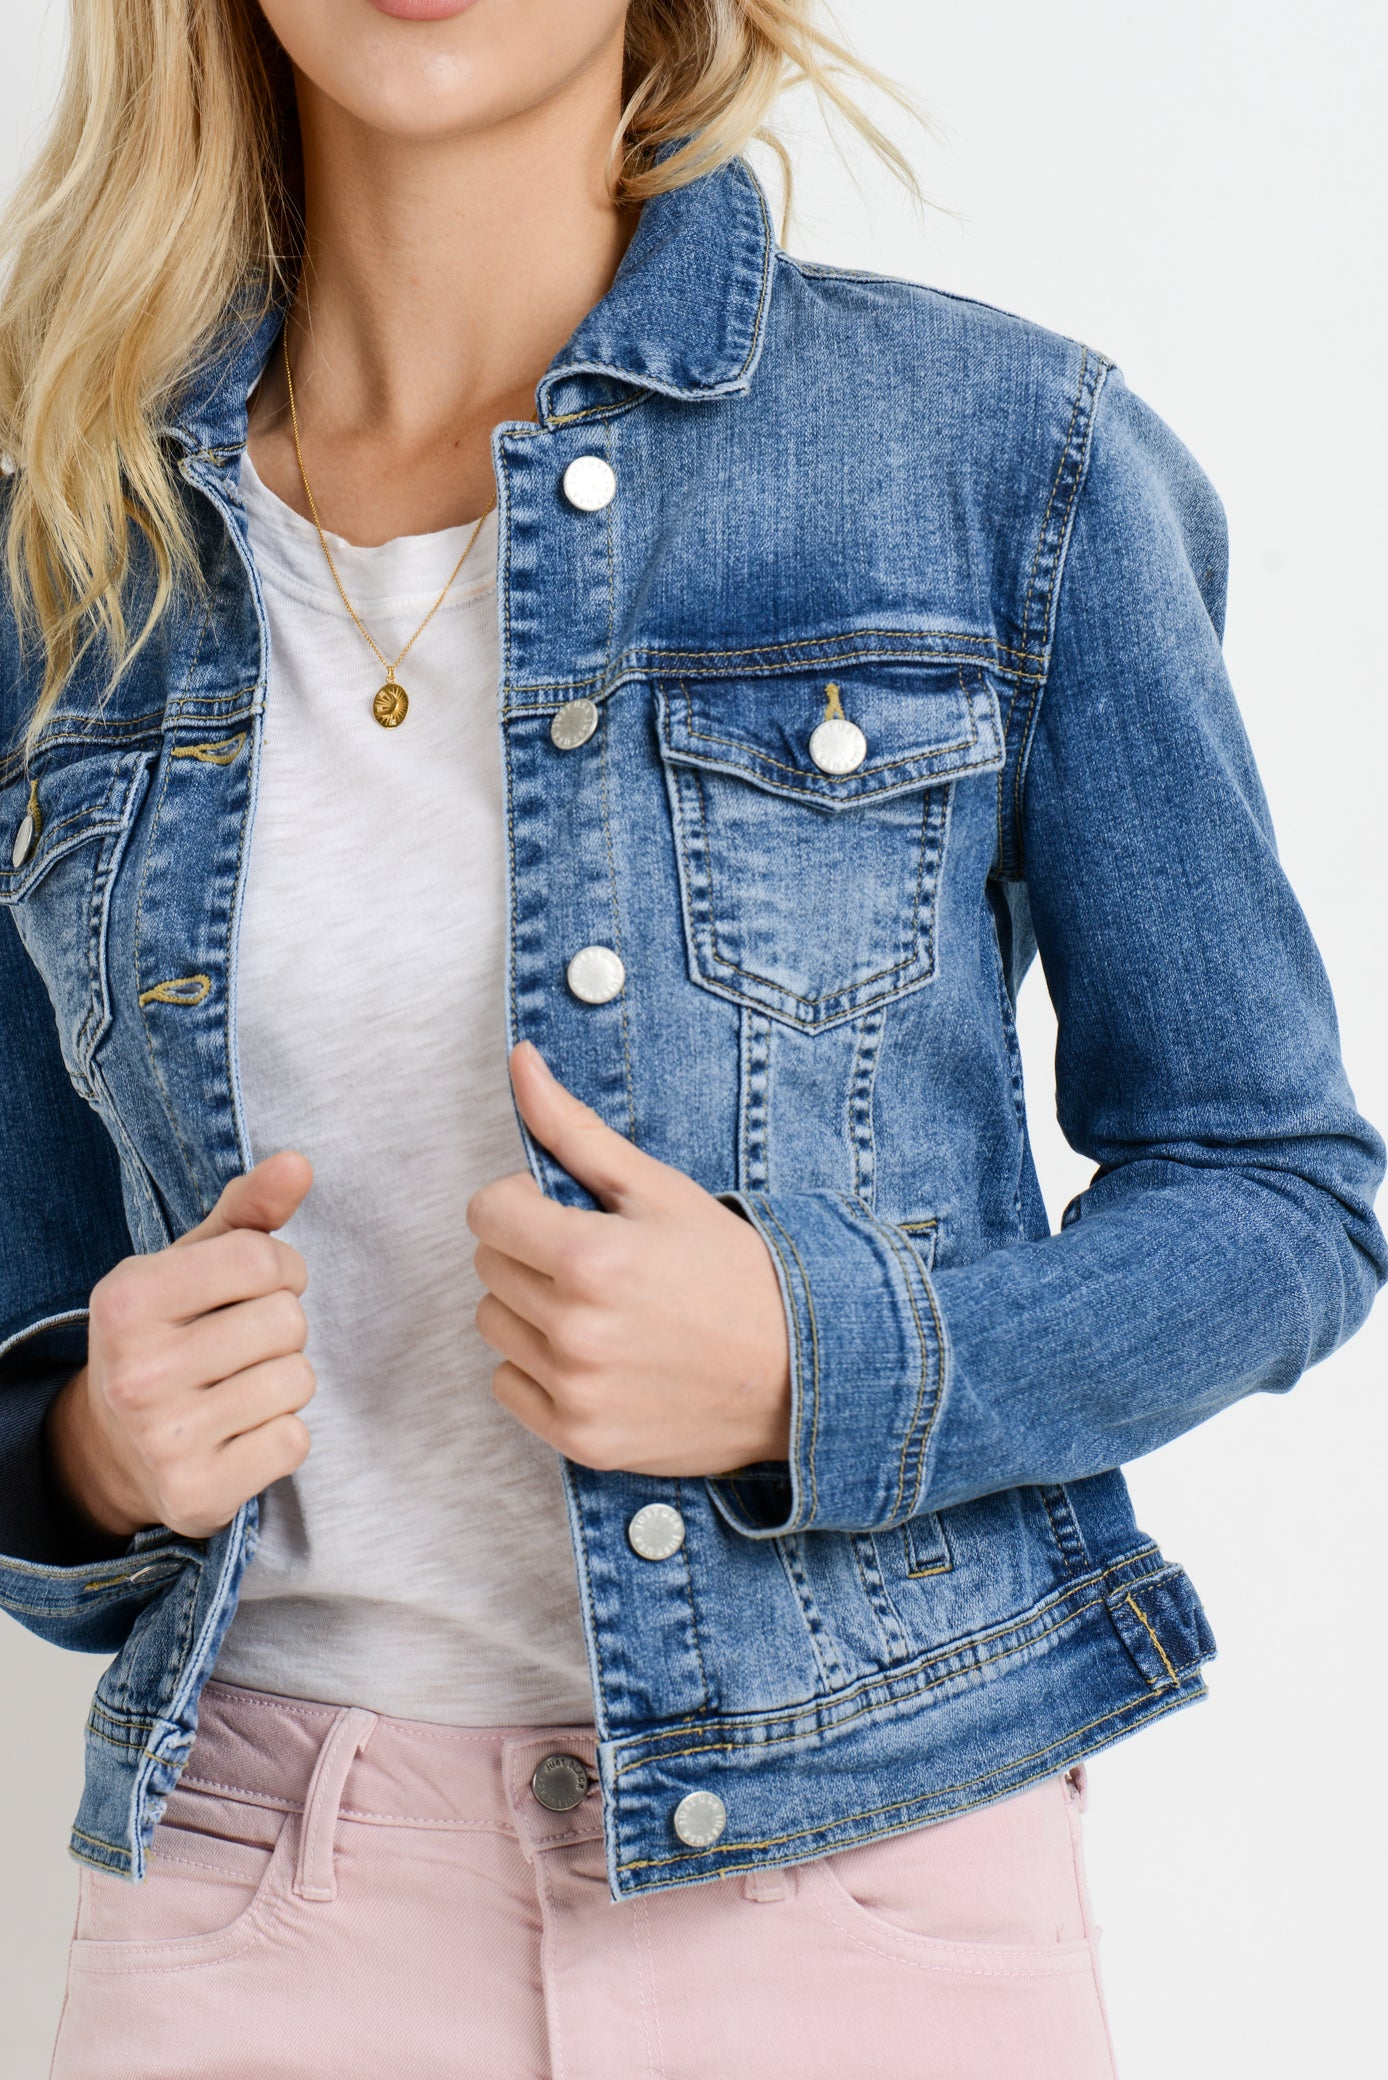 Denim Jacket in Classic Cut